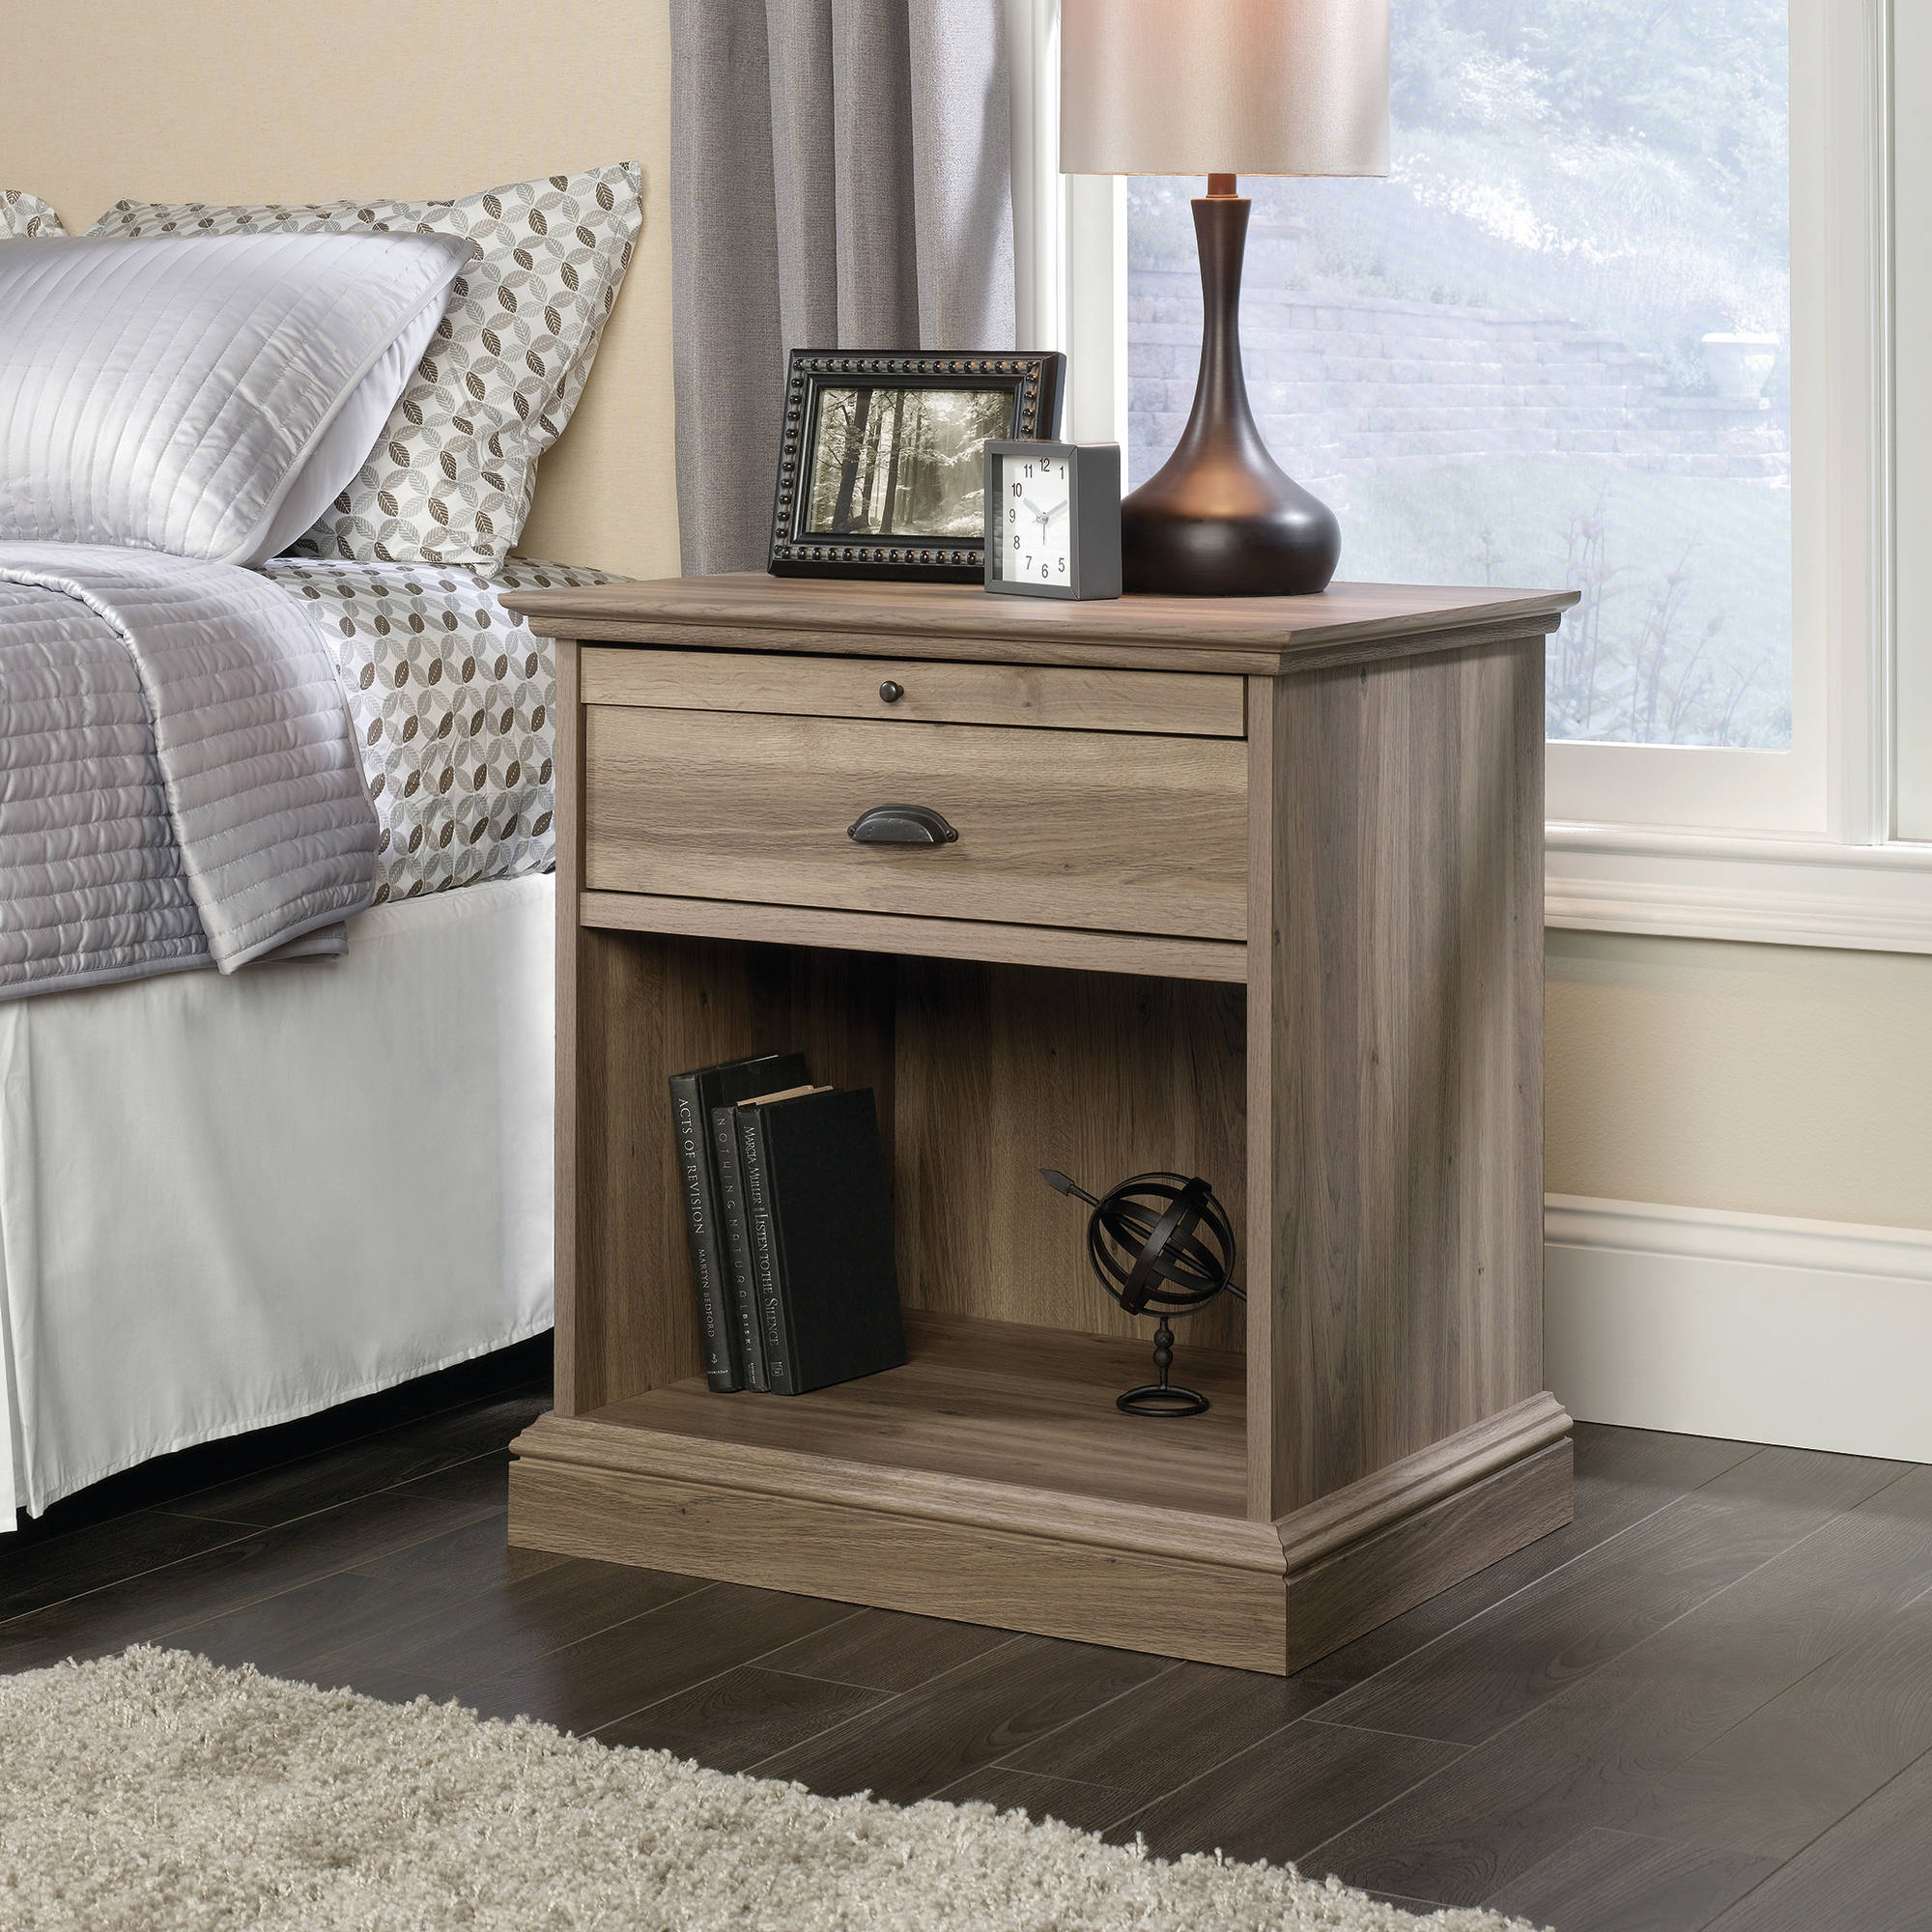 Sauder Barrister Lane Night Stand, Salt Oak Finish by Sauder Woodworking